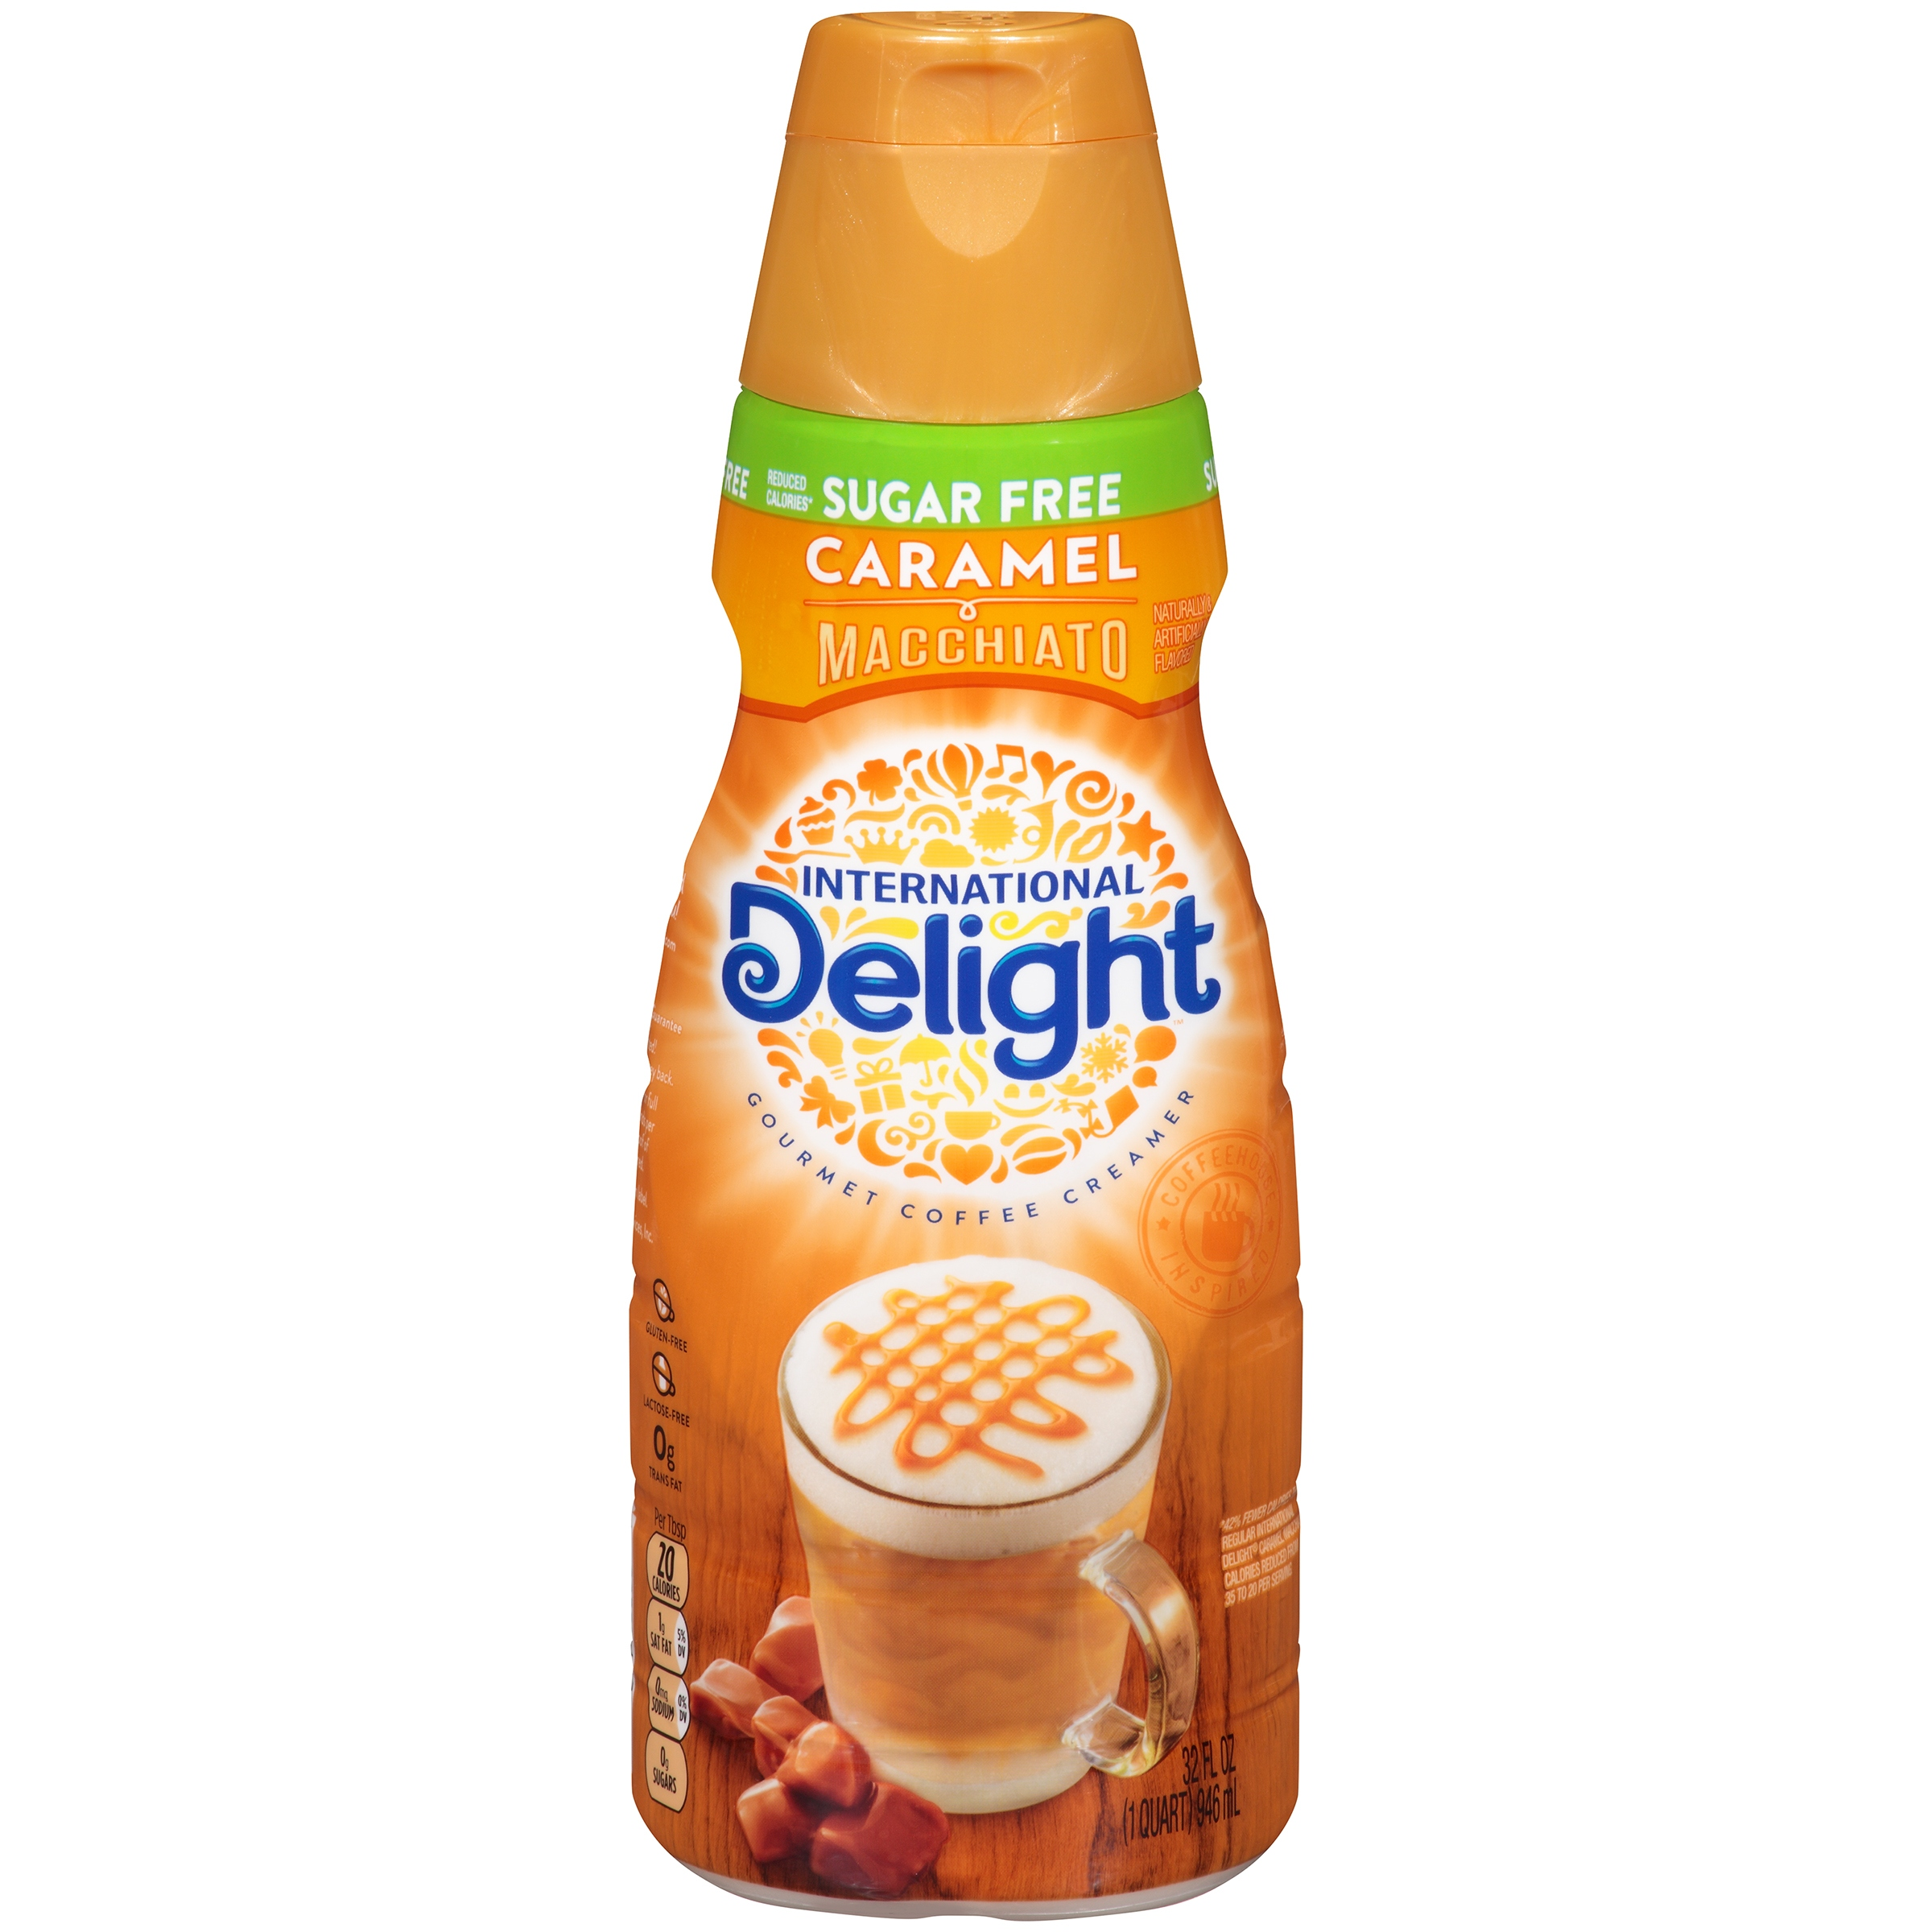 International Delight Sugar Free Caramel Creme Coffee Creamer, 32 oz